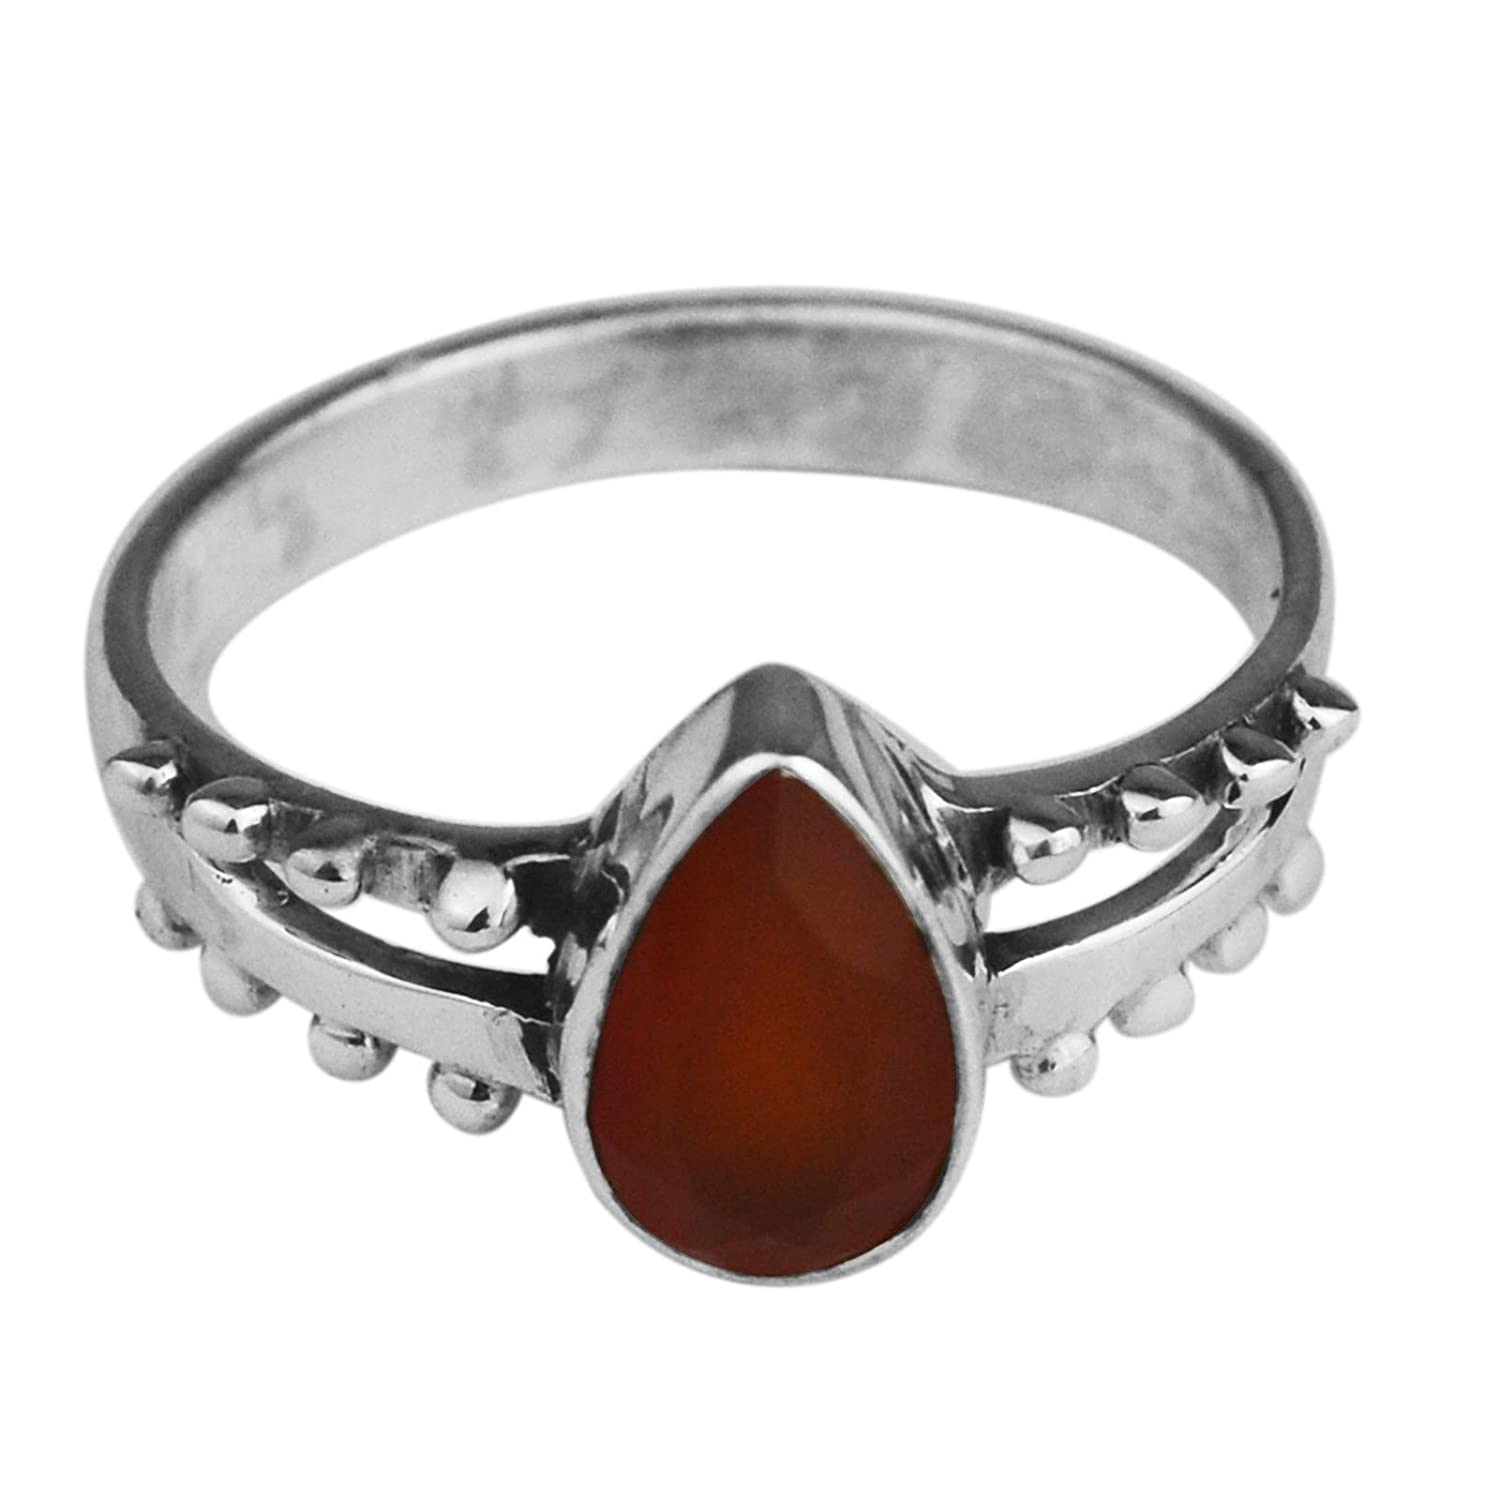 Crystalcraftindia Lucky Carnelain gemstone Ring Size 6 US 2.14 g 925 Sterling Silver